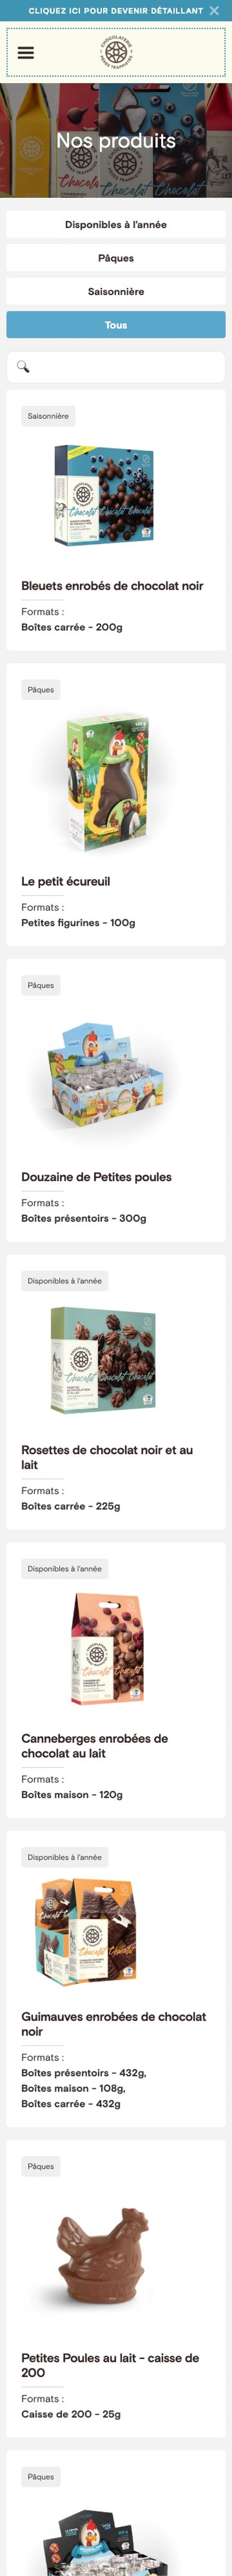 webflow project 6 - Chocolaterie des Pères Trappistes